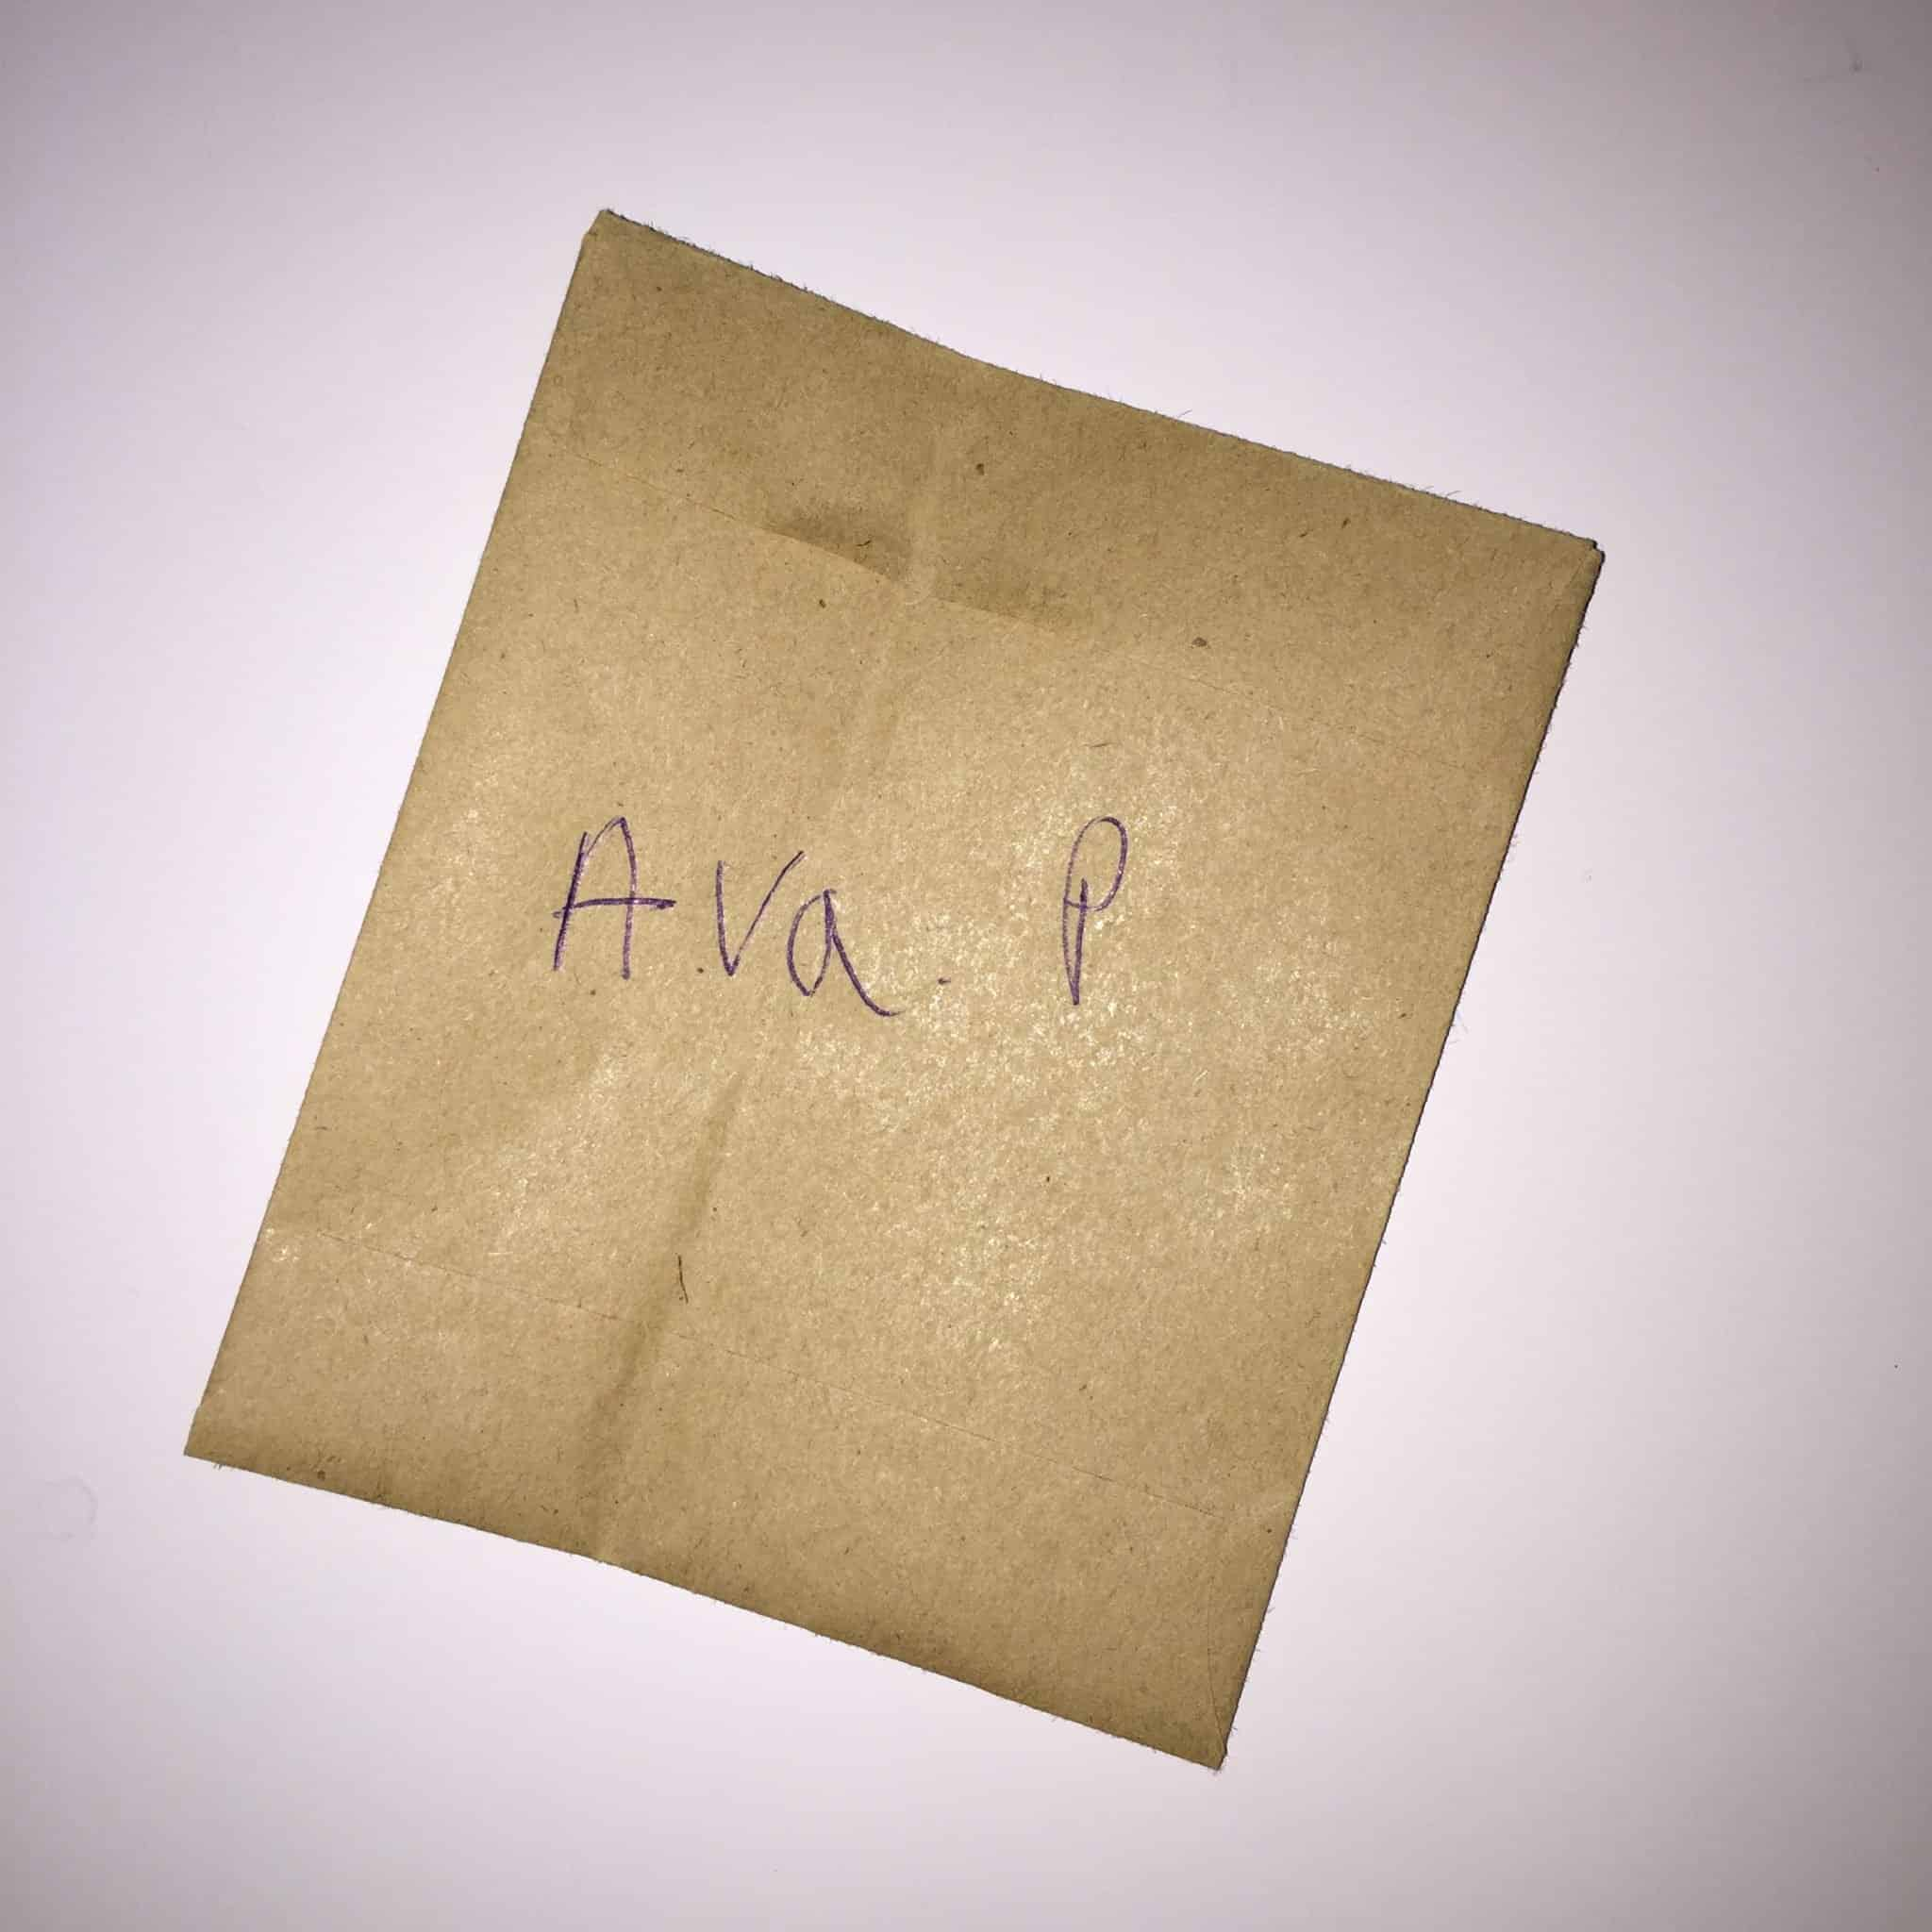 Envelope containing Ava's hair